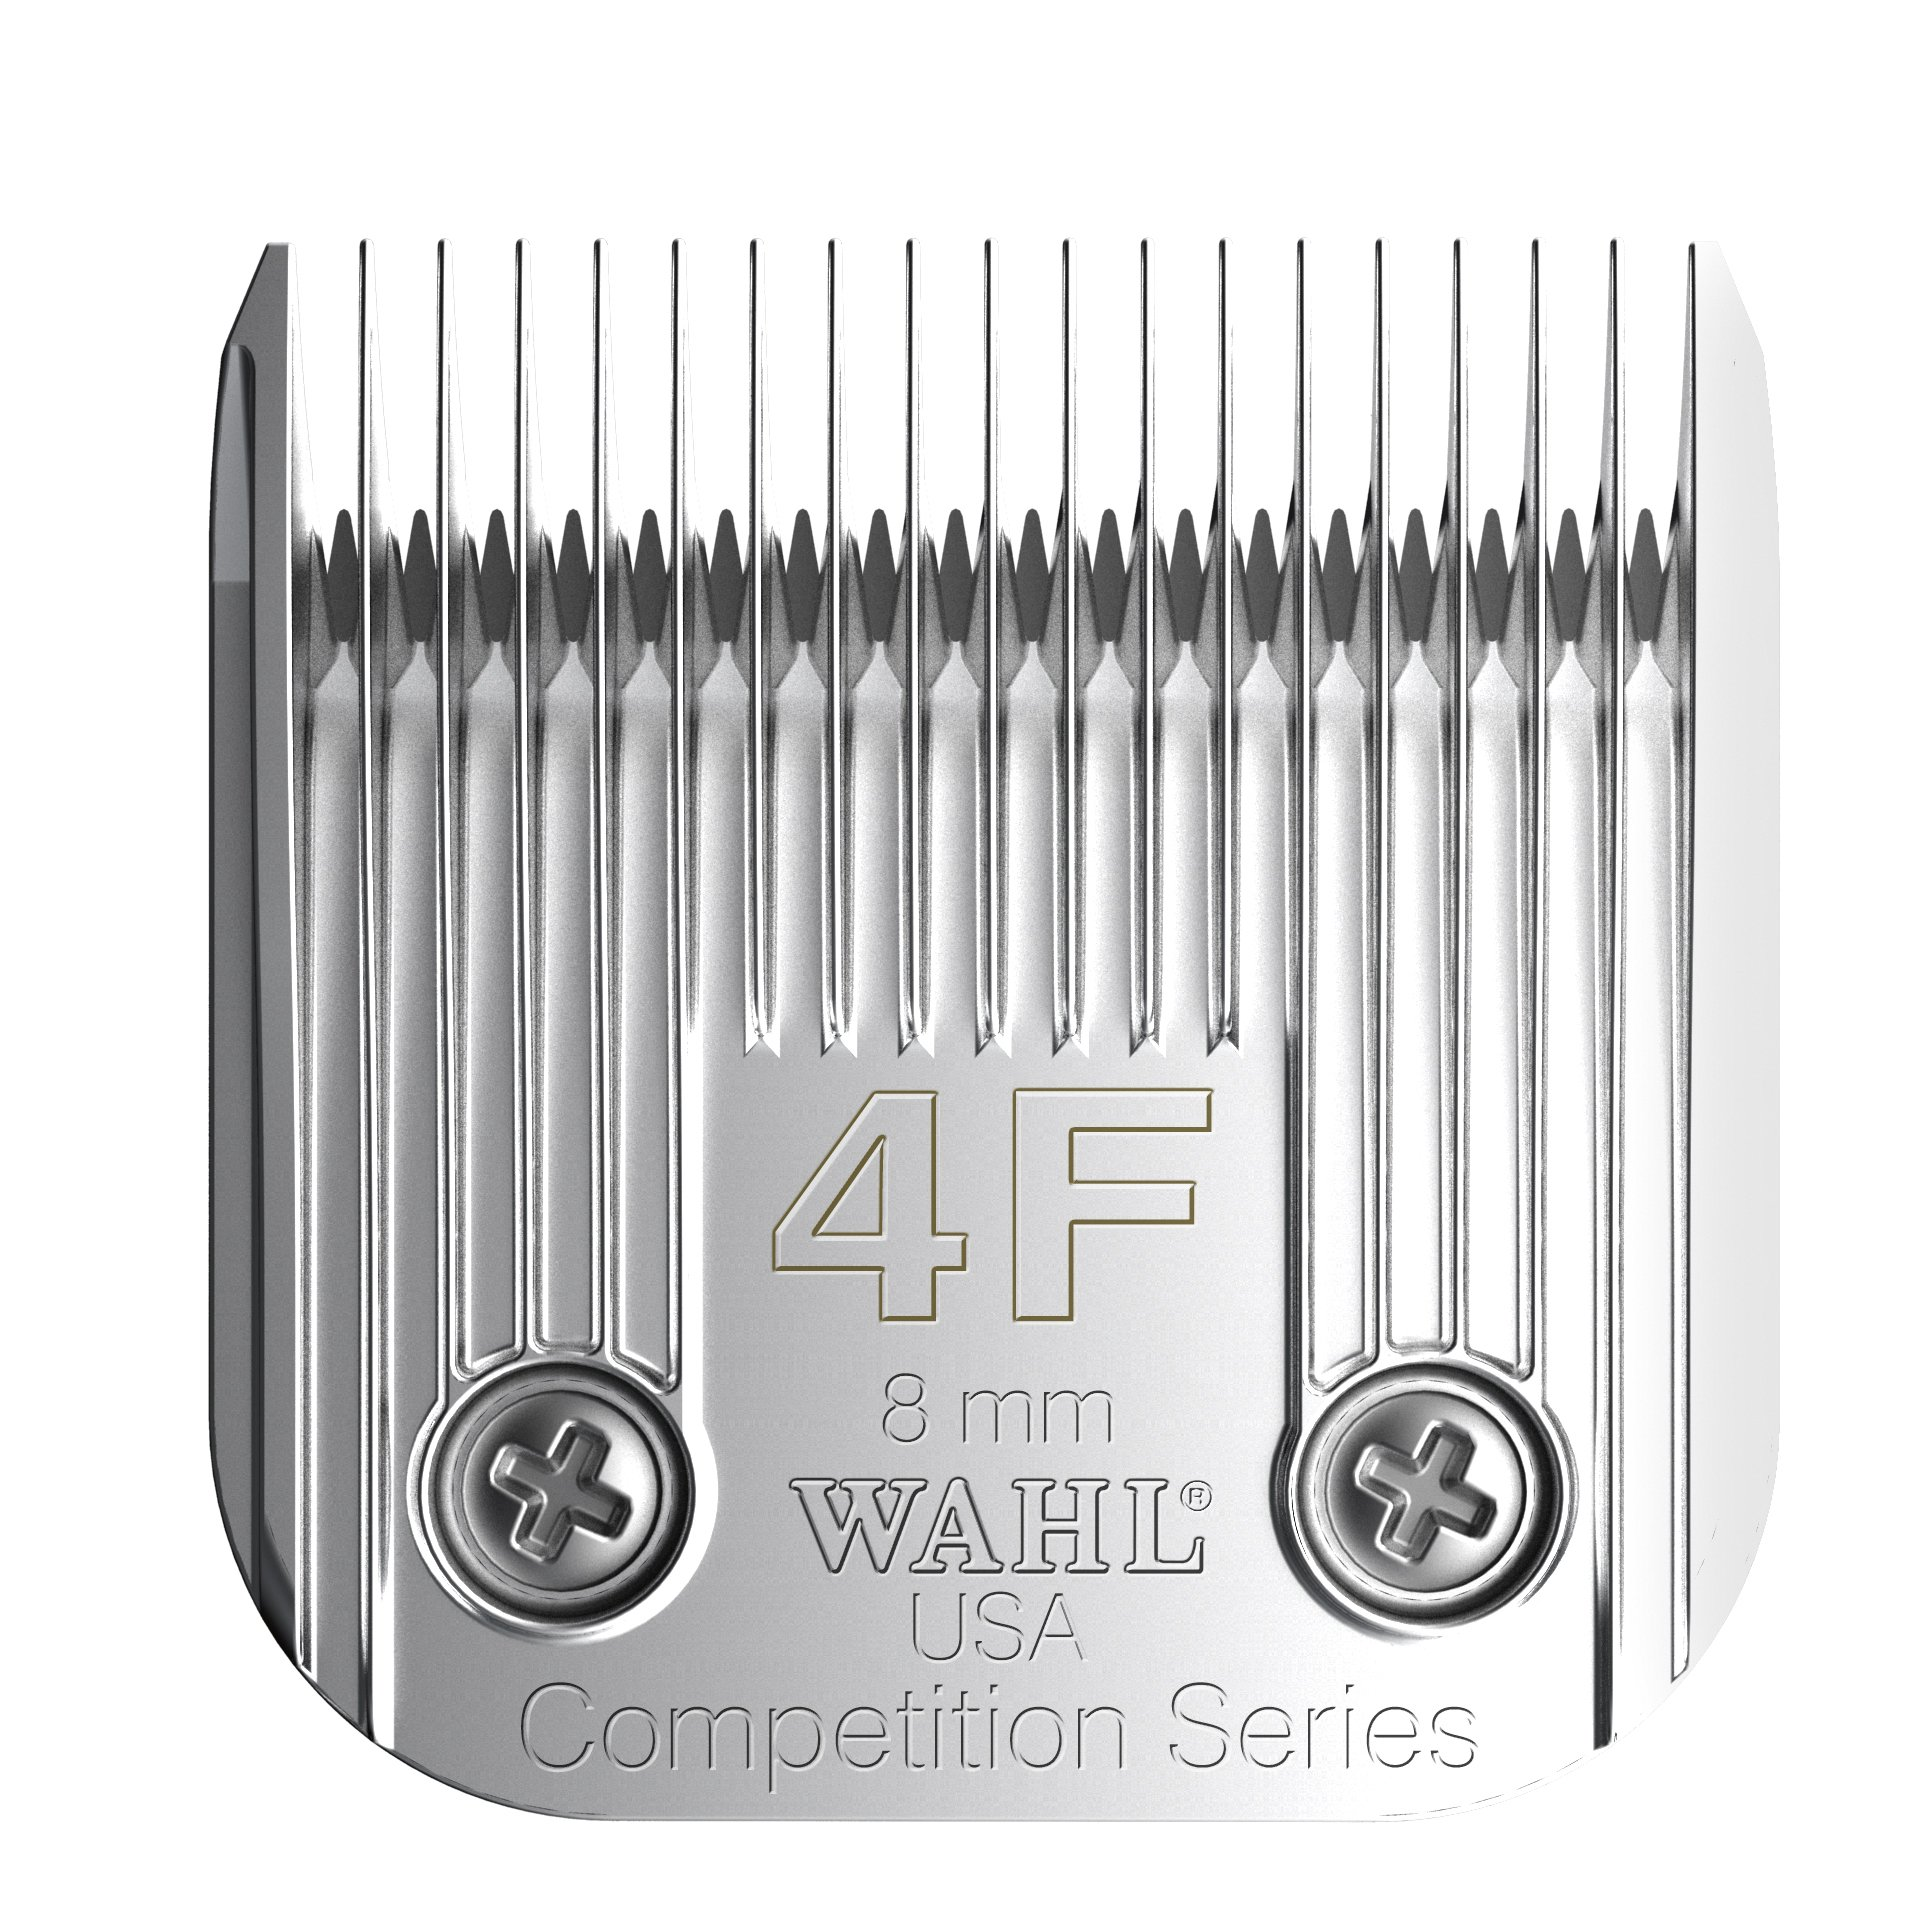 Wahl Professional Animal #4F Extra Full Coarse Competition Series Detachable Blade with 5/16-Inch Cut Length (#2375-100)